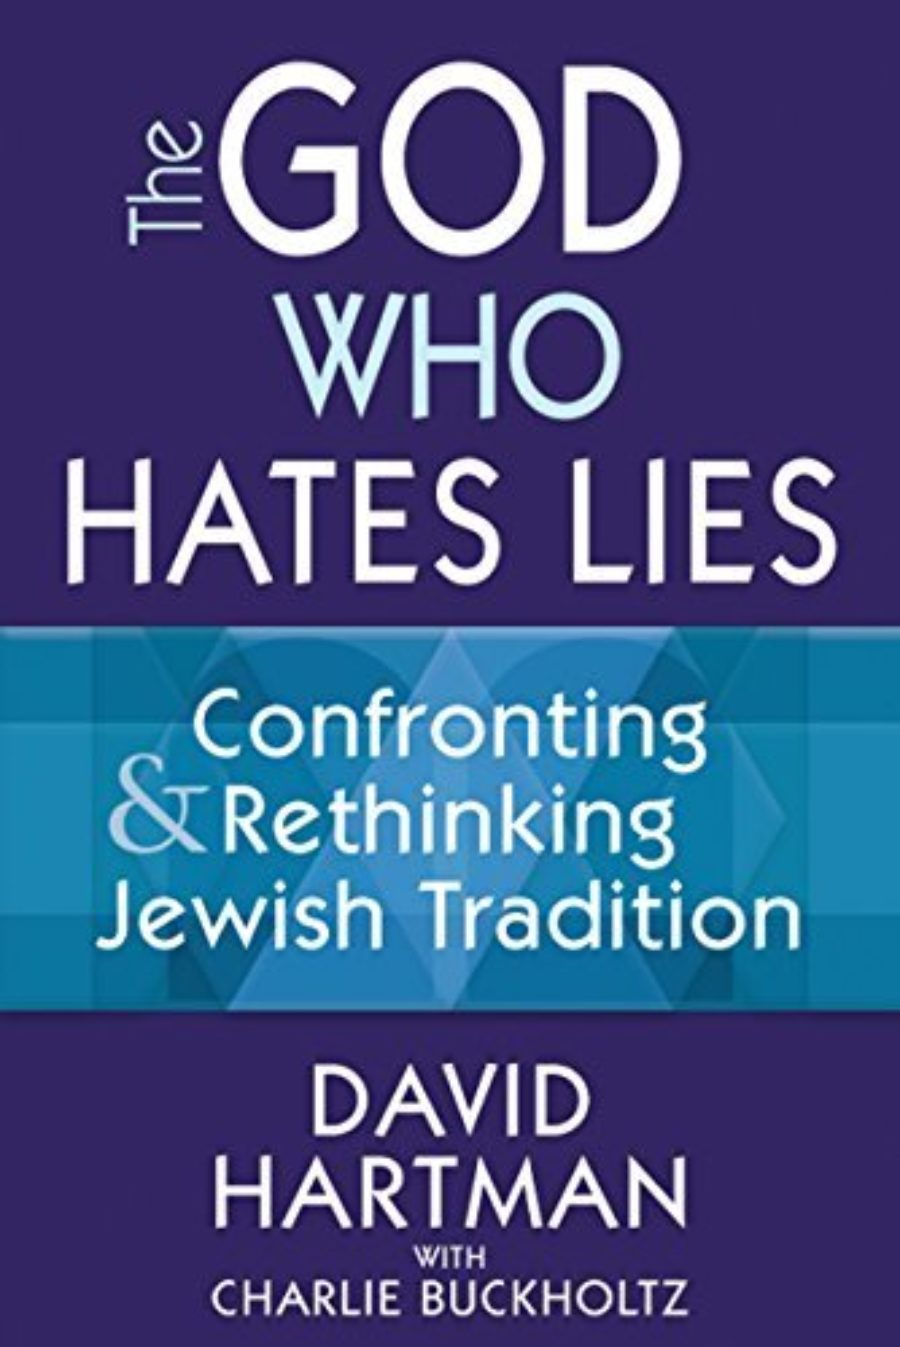 Cover of The God Who Hates Lies: Confronting & Rethinking Jewish Tradition